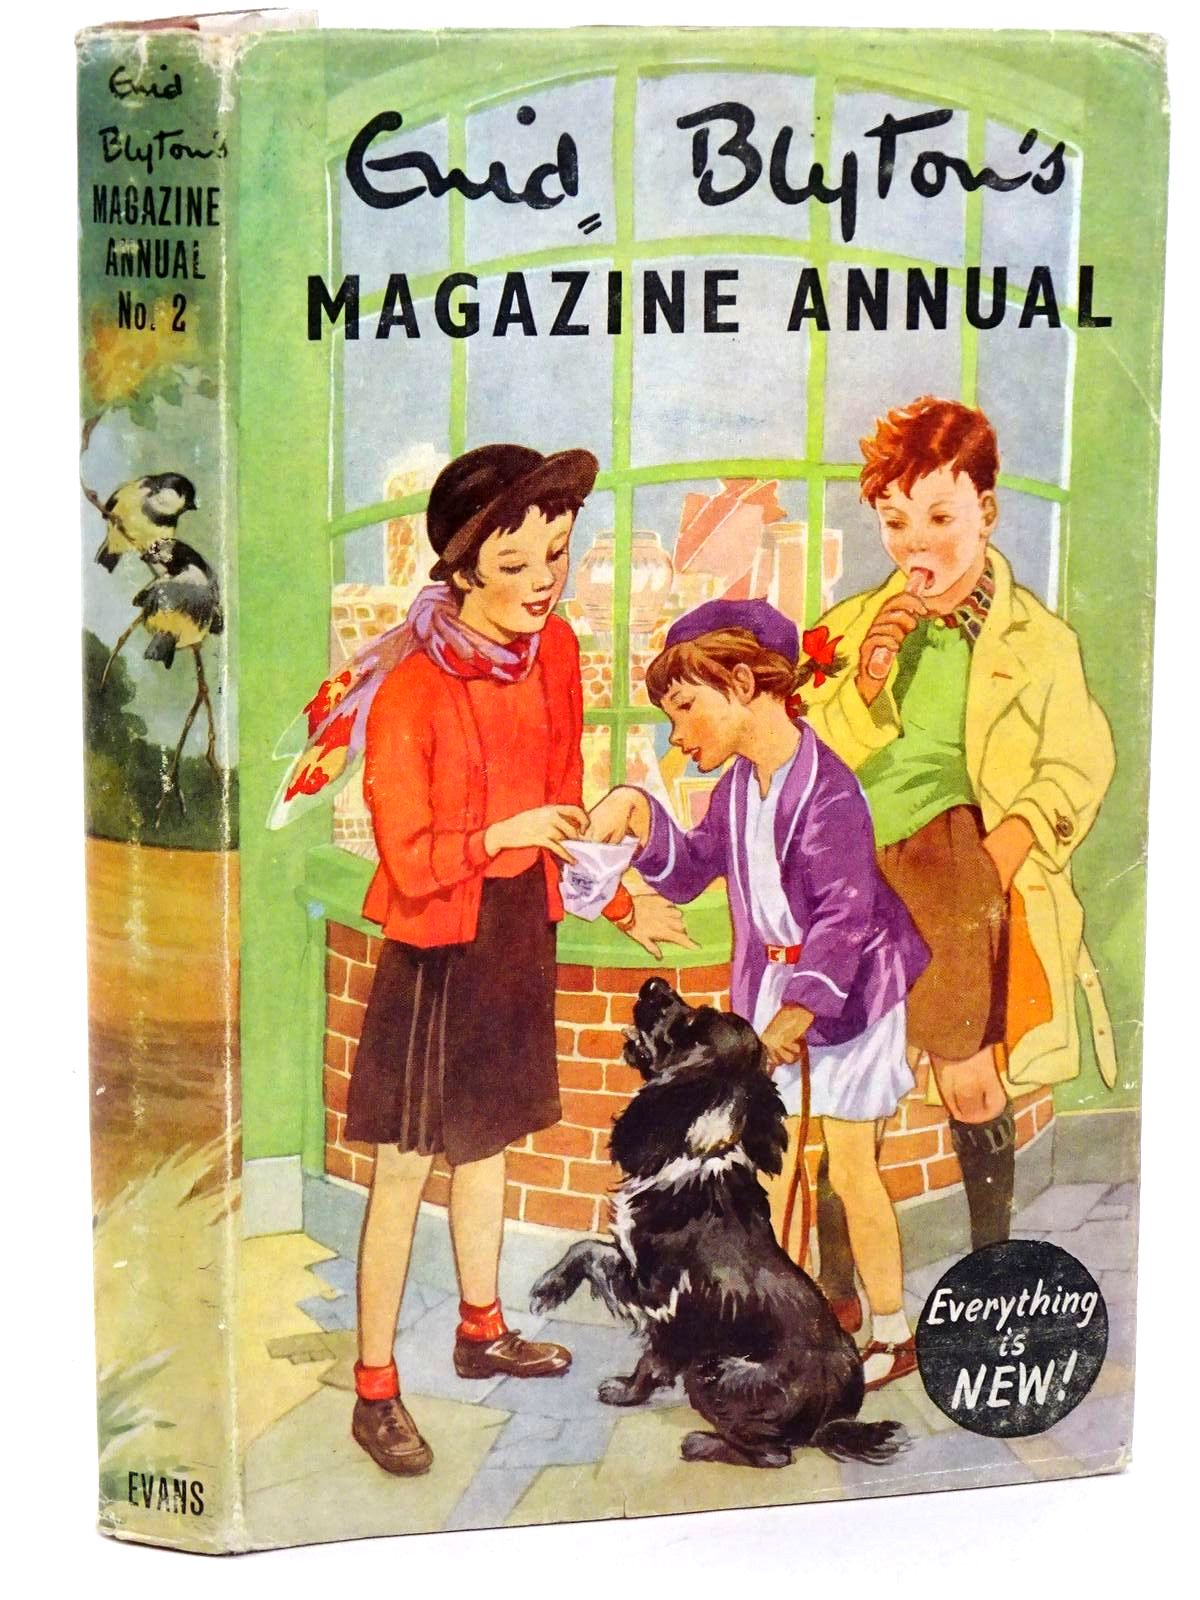 Photo of ENID BLYTON'S MAGAZINE ANNUAL NO. 2 written by Blyton, Enid published by Evans Brothers Limited (STOCK CODE: 1318414)  for sale by Stella & Rose's Books